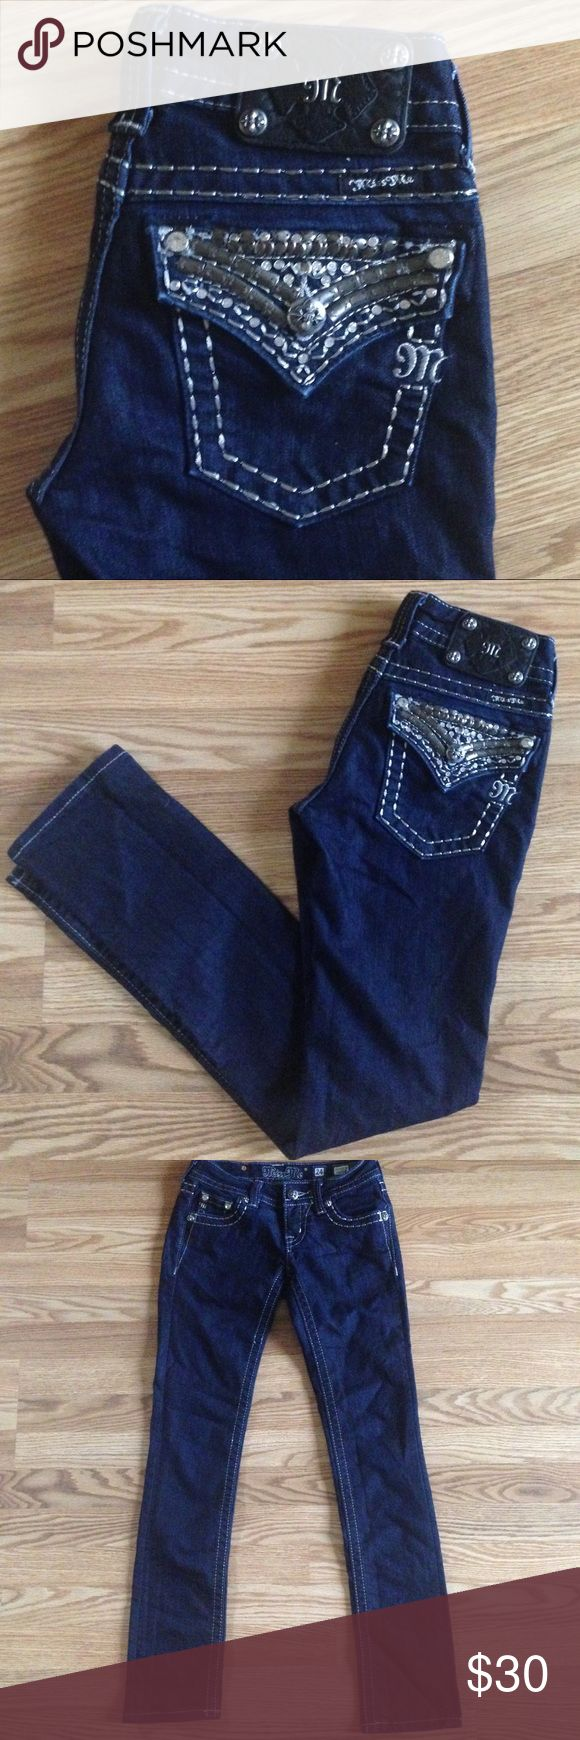 Miss Me Skinny Jeans Miss Me Jeans...sz 24 ...Excellent /Like New Condition Miss Me Jeans